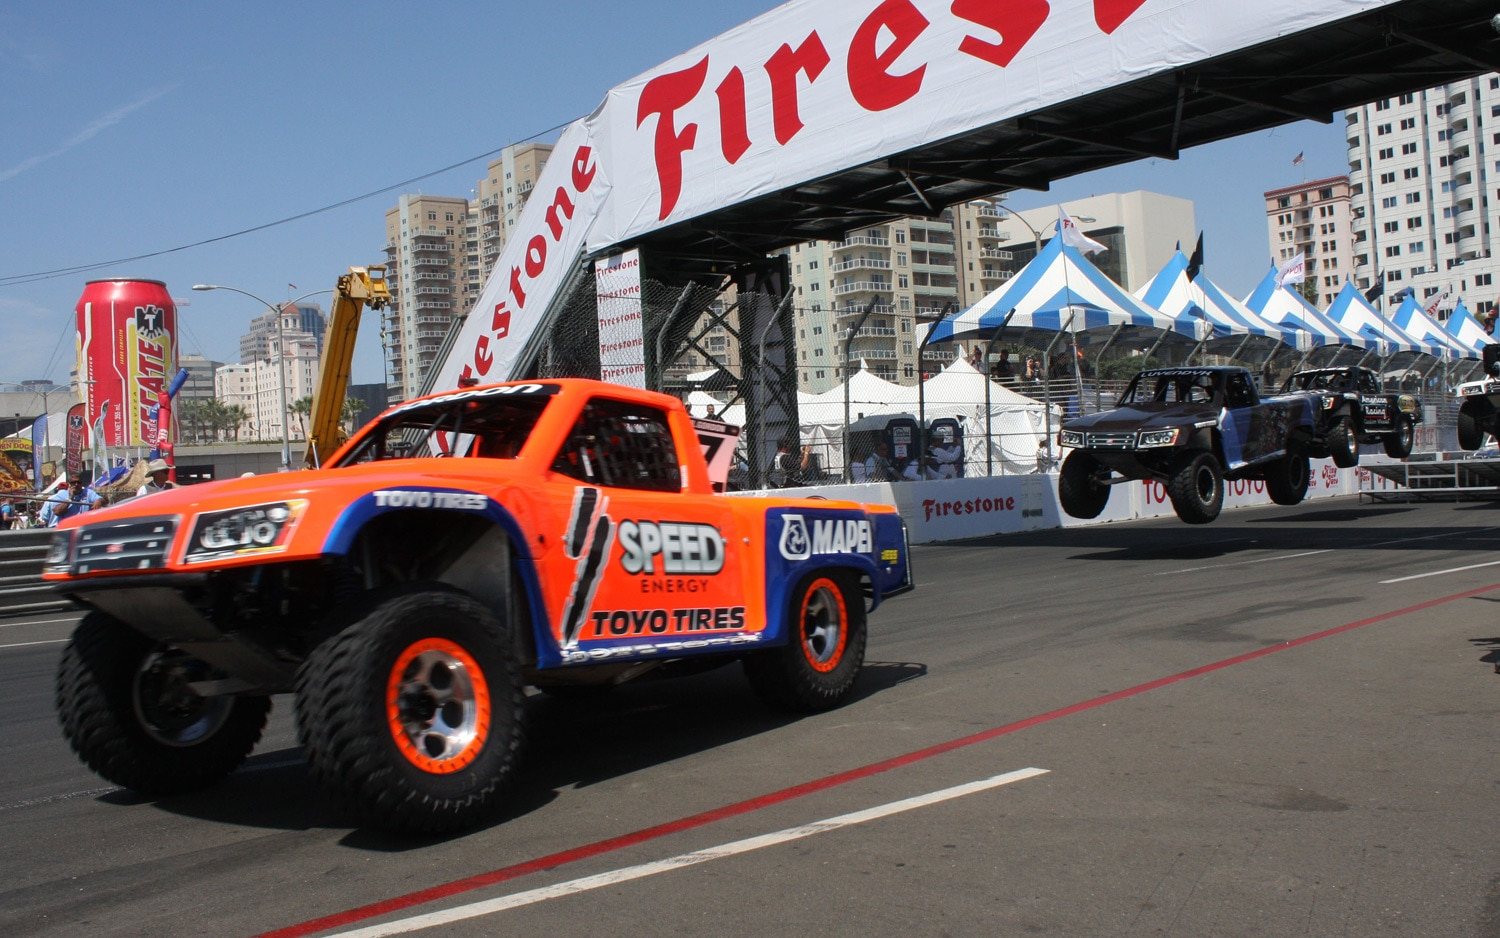 1304OR 23+Robby Gordon SST Stadium Super Trucks 2013 Long Beach Grand Prix